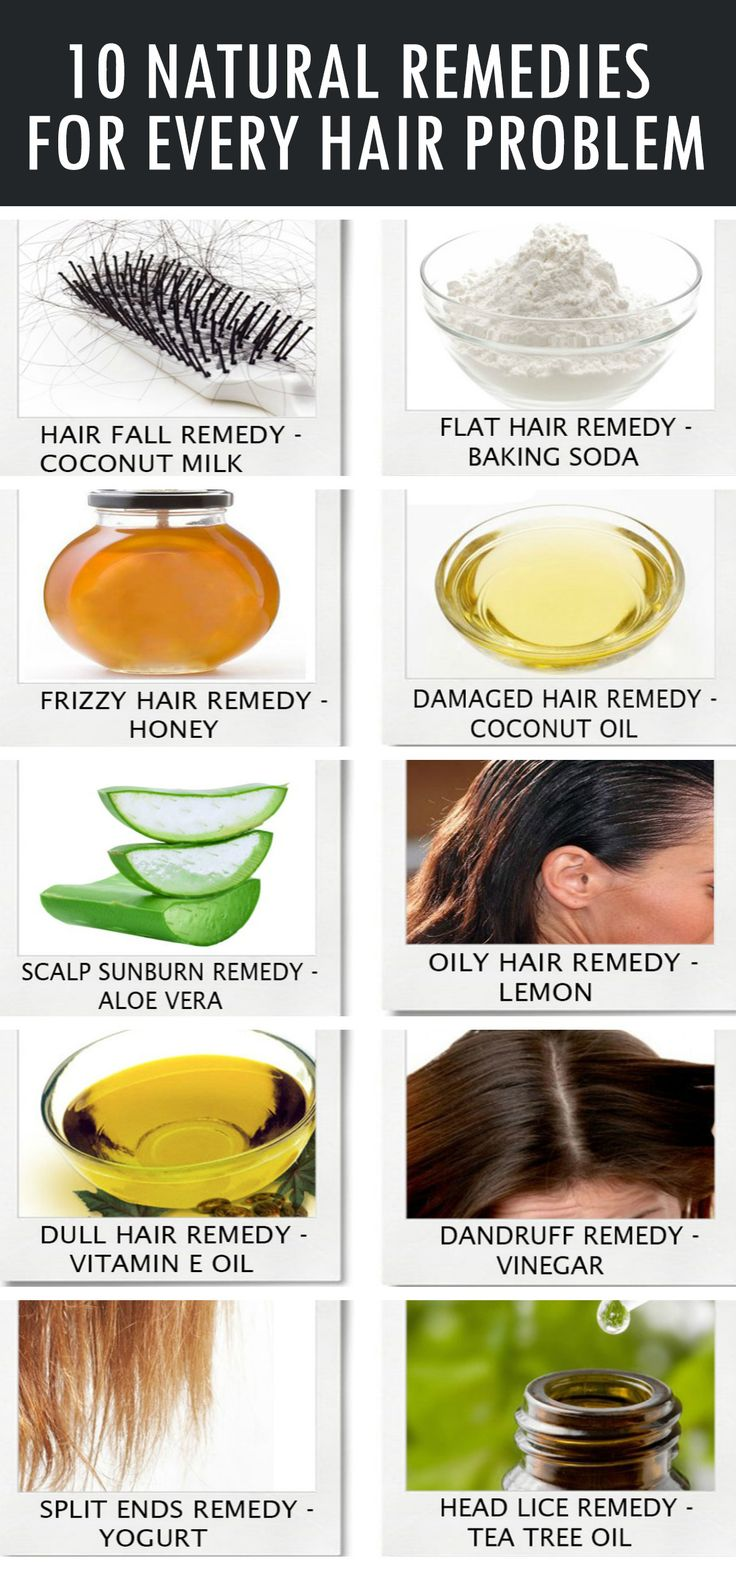 TOP 10 NATURAL REMEDIES FOR EVERY HAIR PROBLEM - THEINDIANSPOT - Page 5